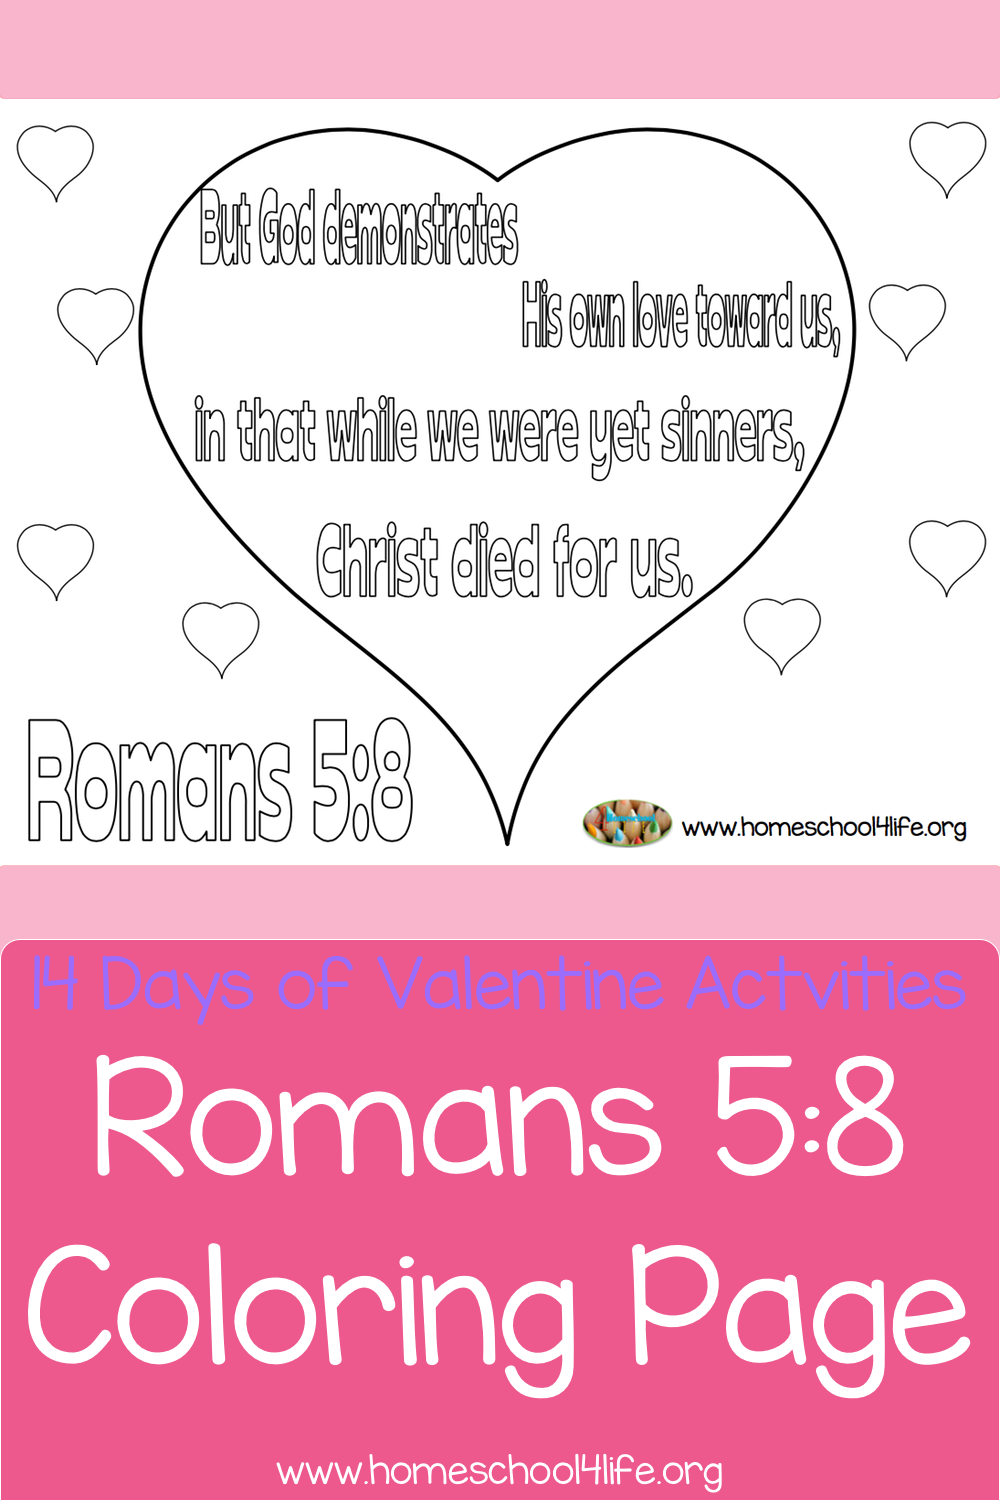 Romans 5:8 Coloring Page | Homeschool4Life.org / Where Homeschooling ...